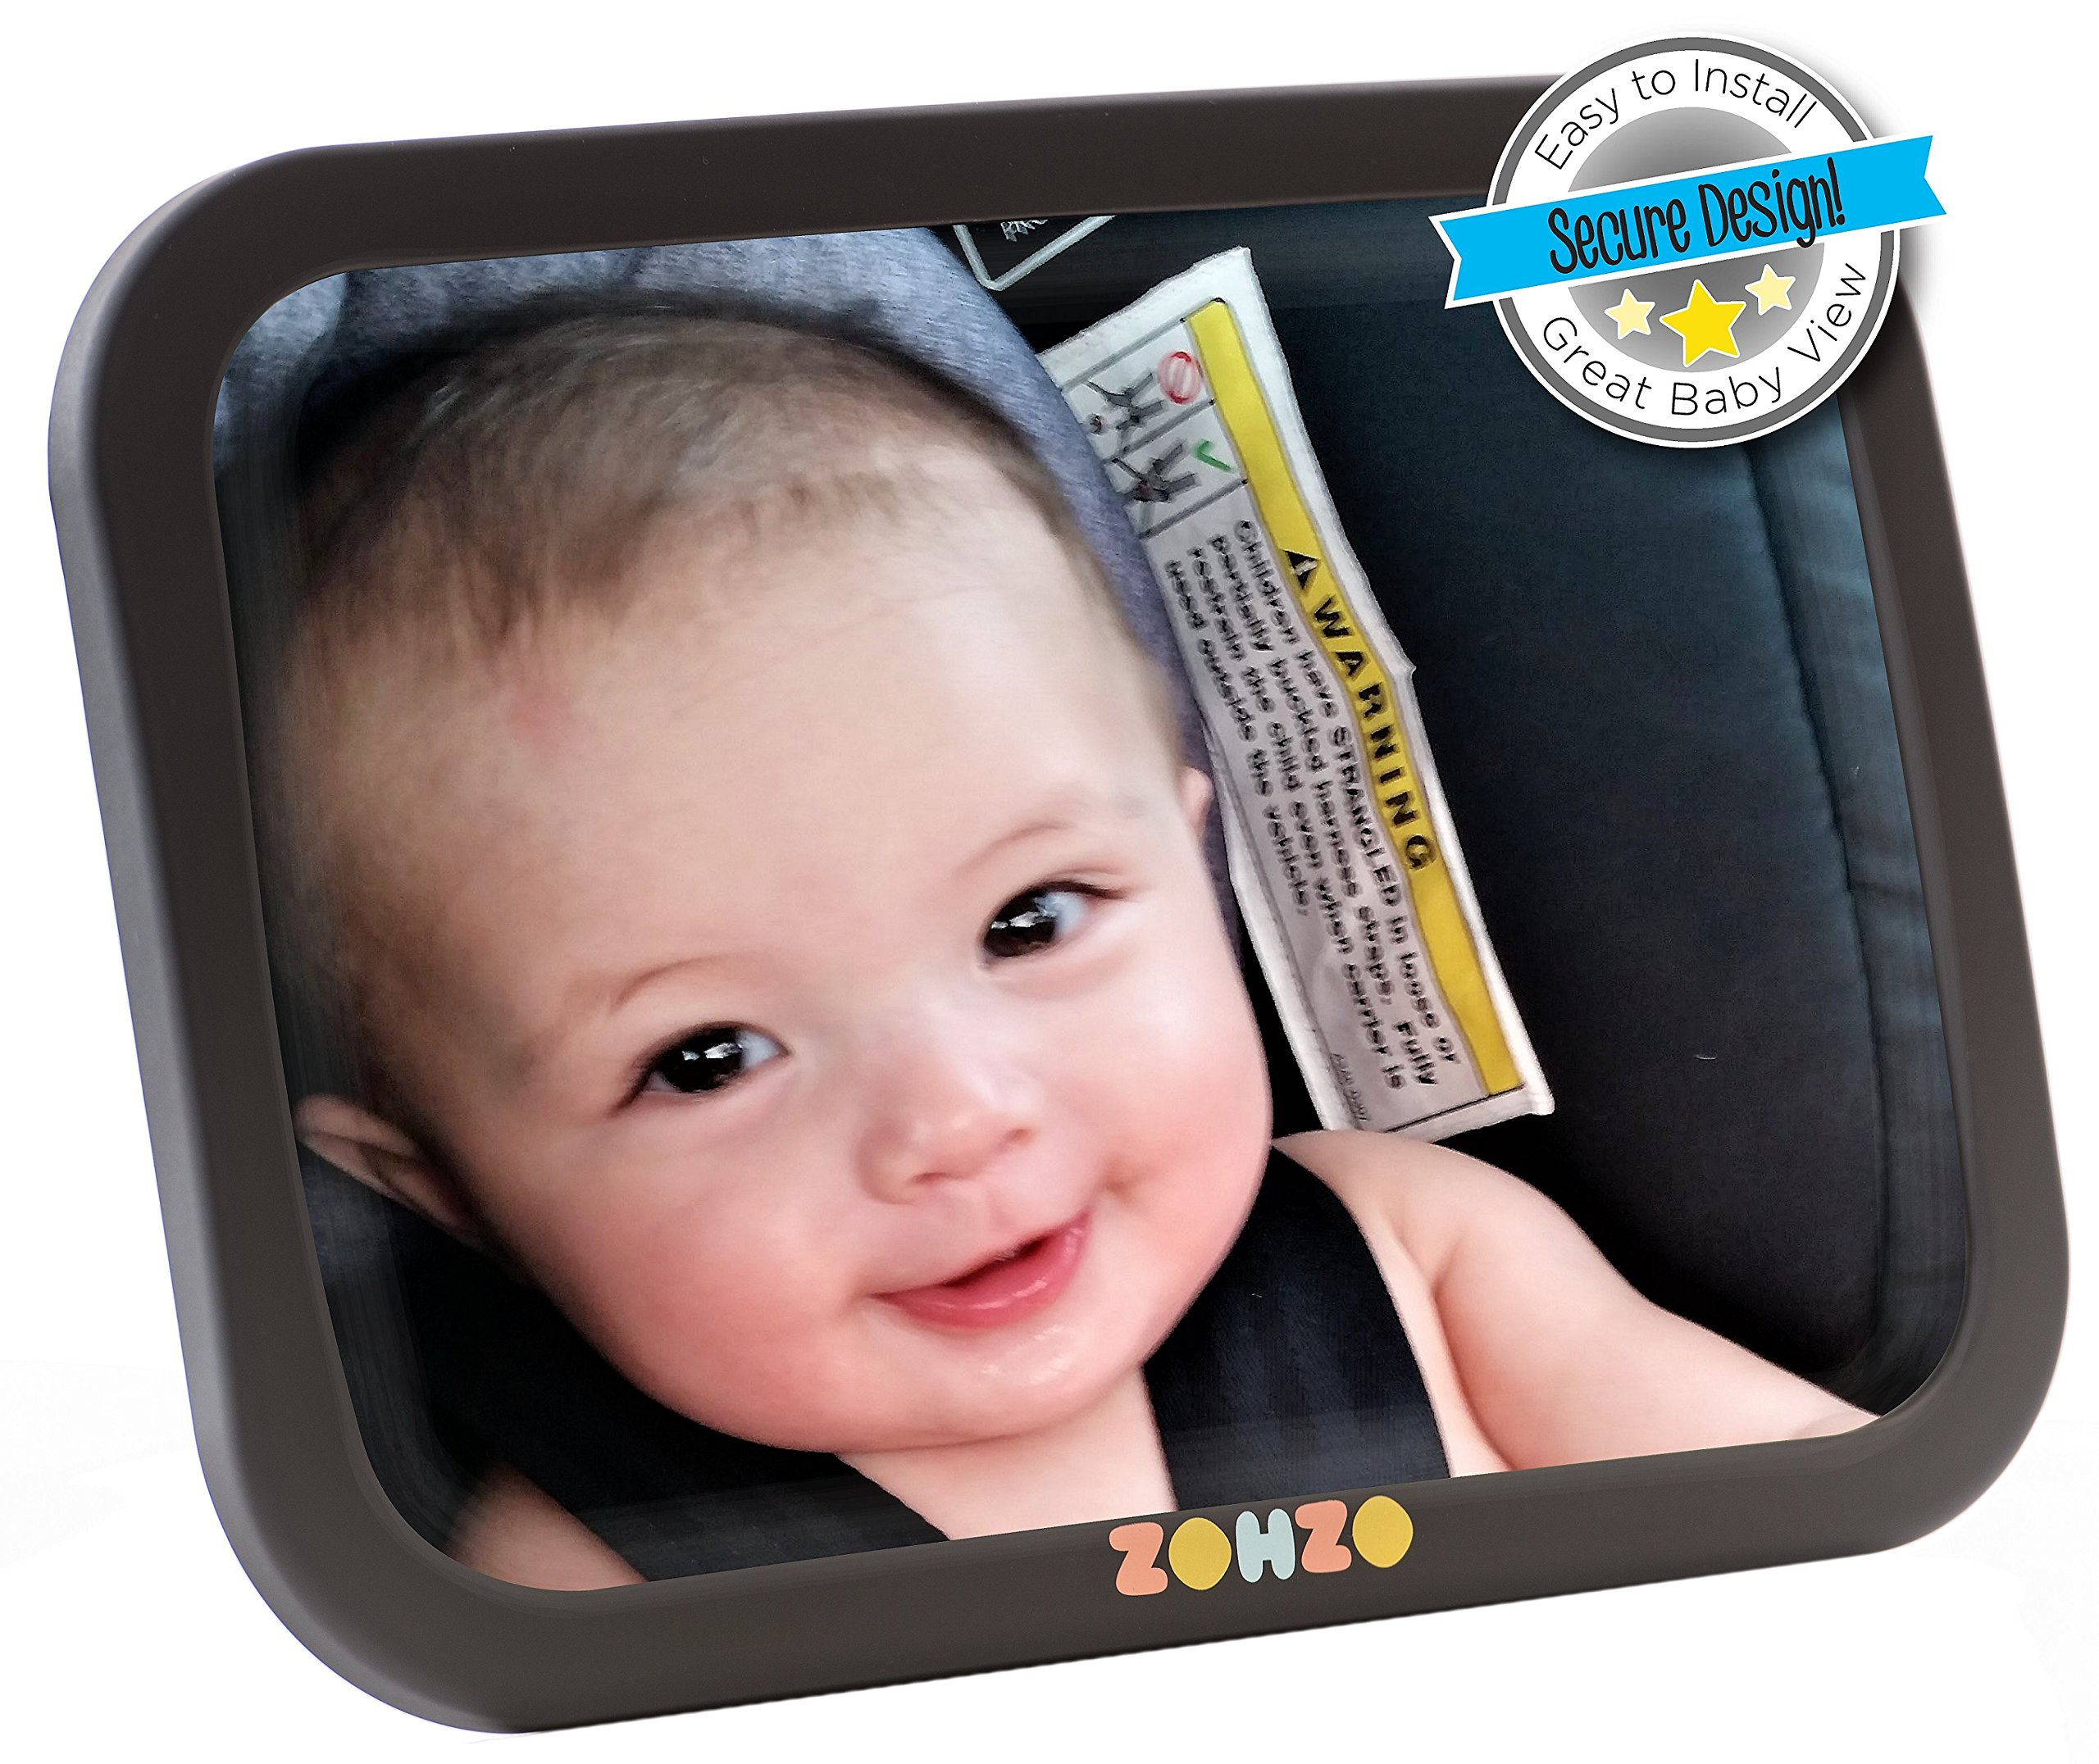 Baby Car Mirror for Back Seat | View Rear Facing Infant in Backseat | Securely Fasten With Double Strap | Pivot Joint to Easily Adjust to Desired Viewing Angle …